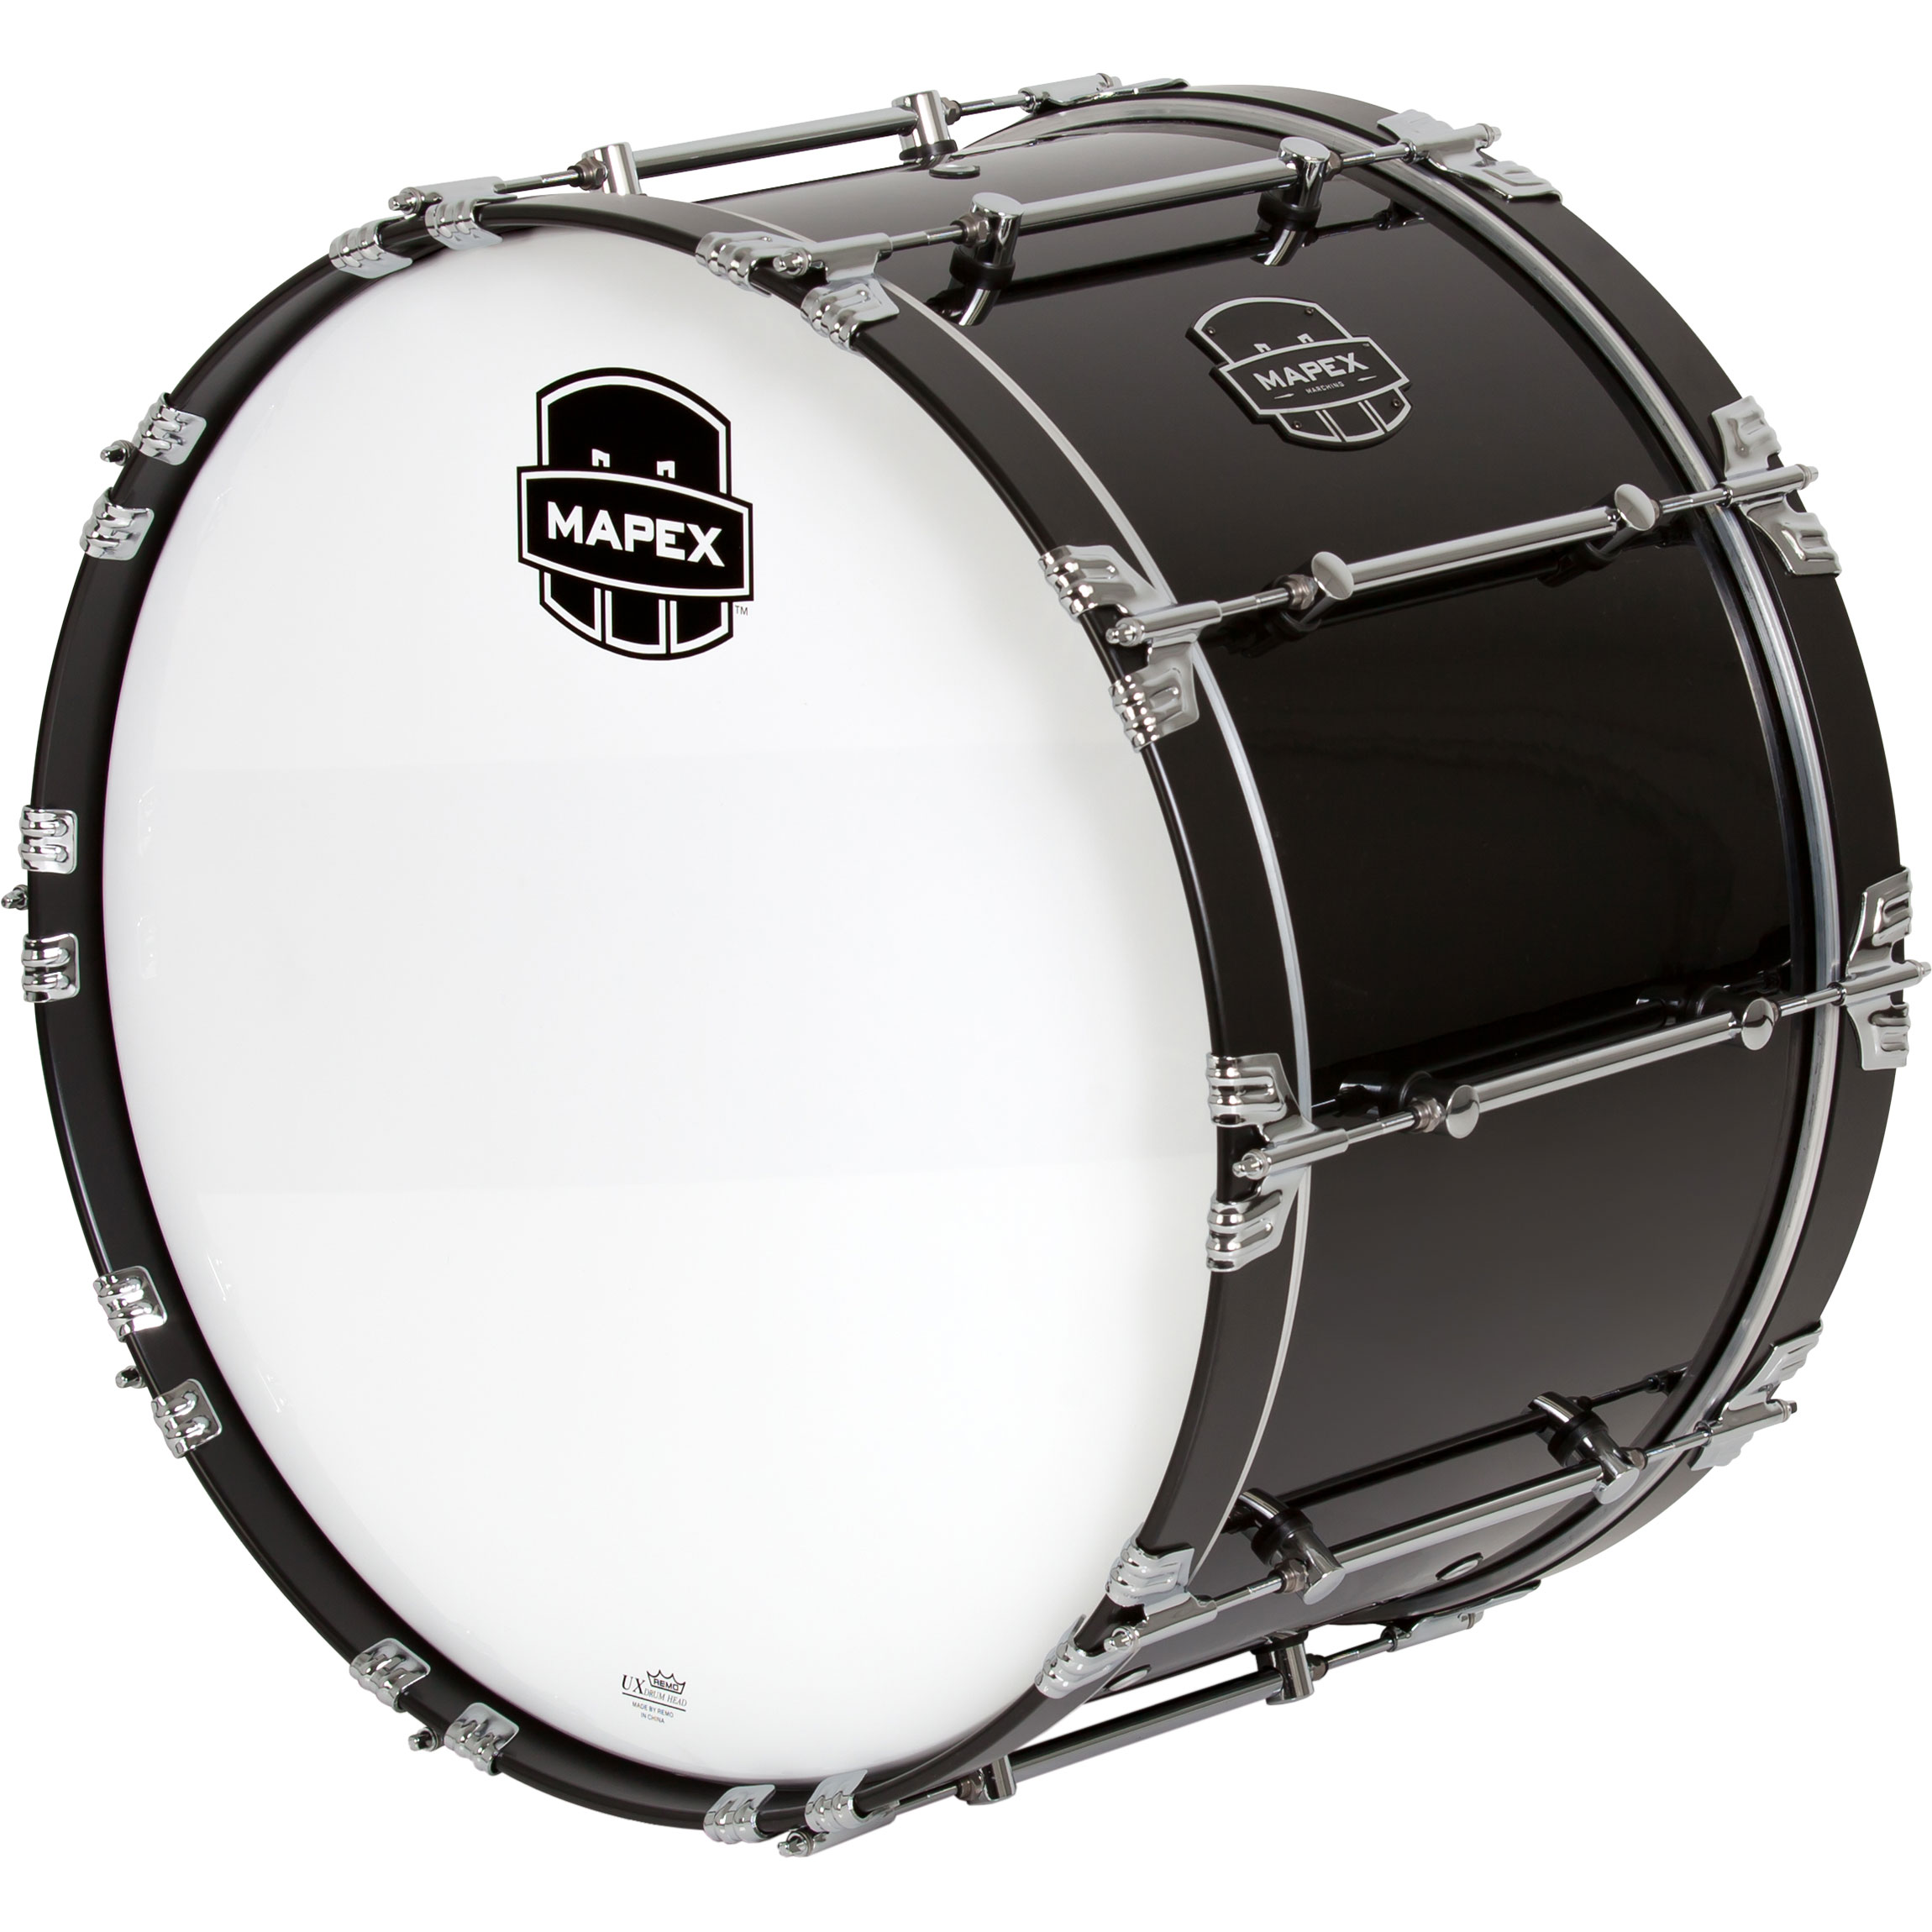 "Mapex 22"" x 14"" Quantum Mark II Marching Bass Drum in Gloss Black"